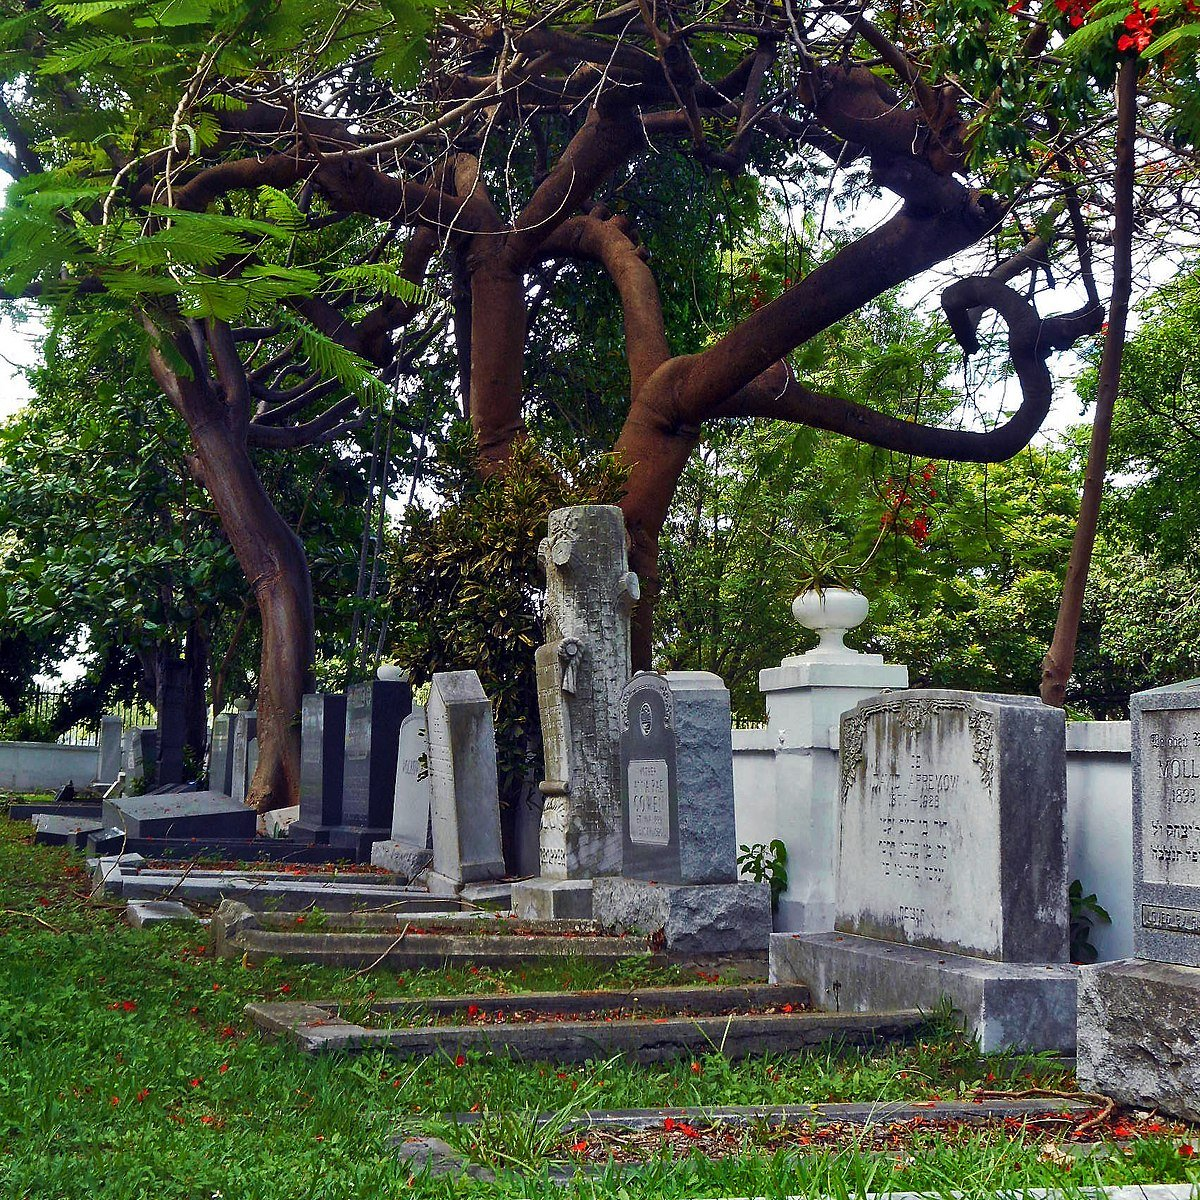 Graves dating back to the 1890s depict a wide variety of headstone styles, indicating the diversity of people and customs in Miami. This image shows the Jewish section  established in 1915. Wikimedia Commons.